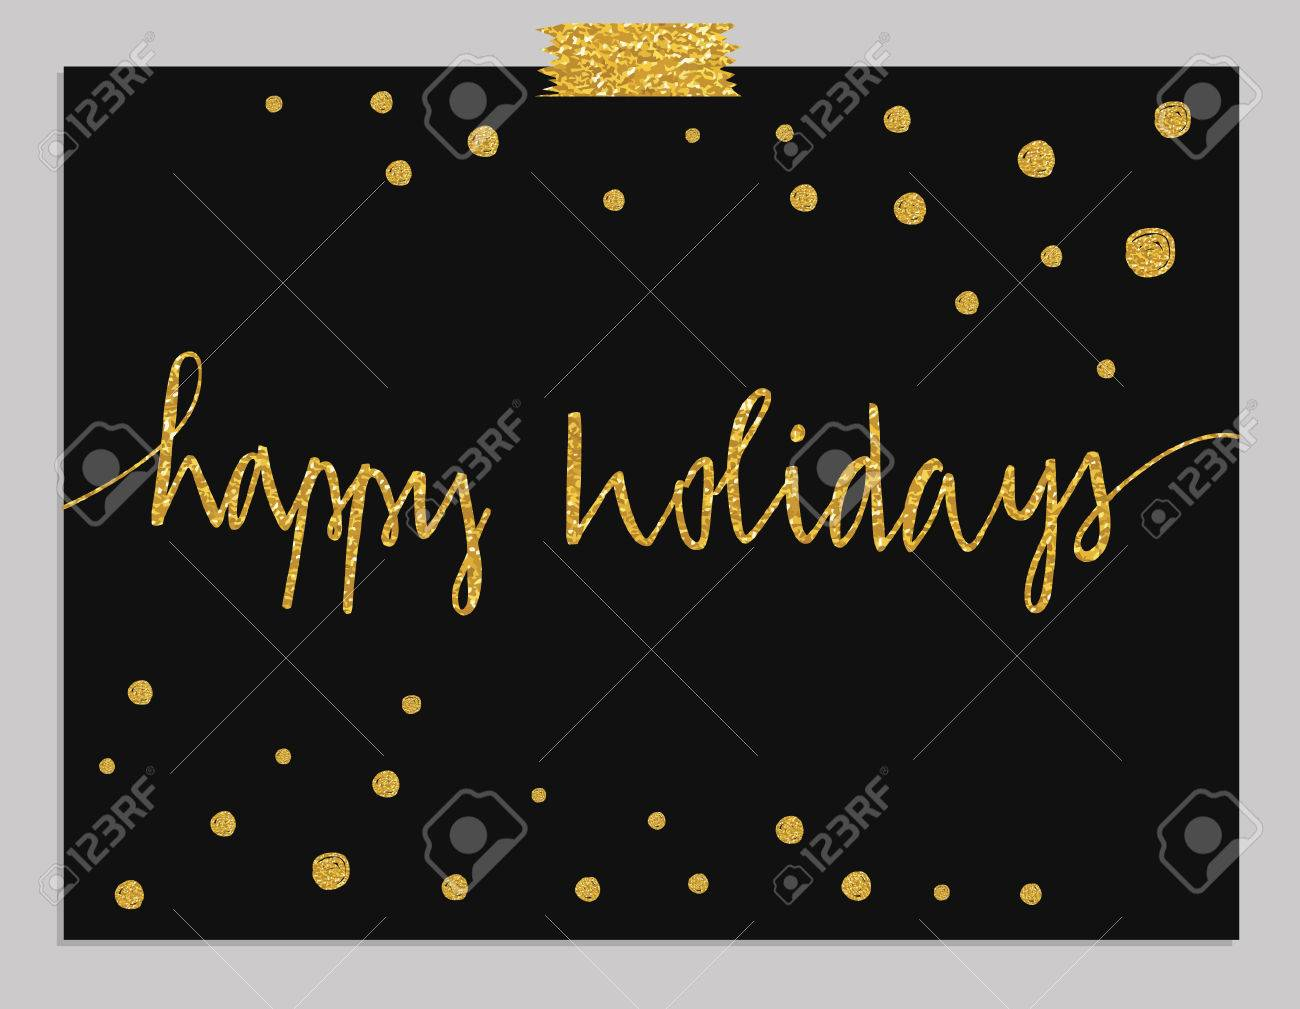 Hand drawn typography card. Happy Holidays greetings hand-lettering isolated on mint striped background with gold dots. - 47780874